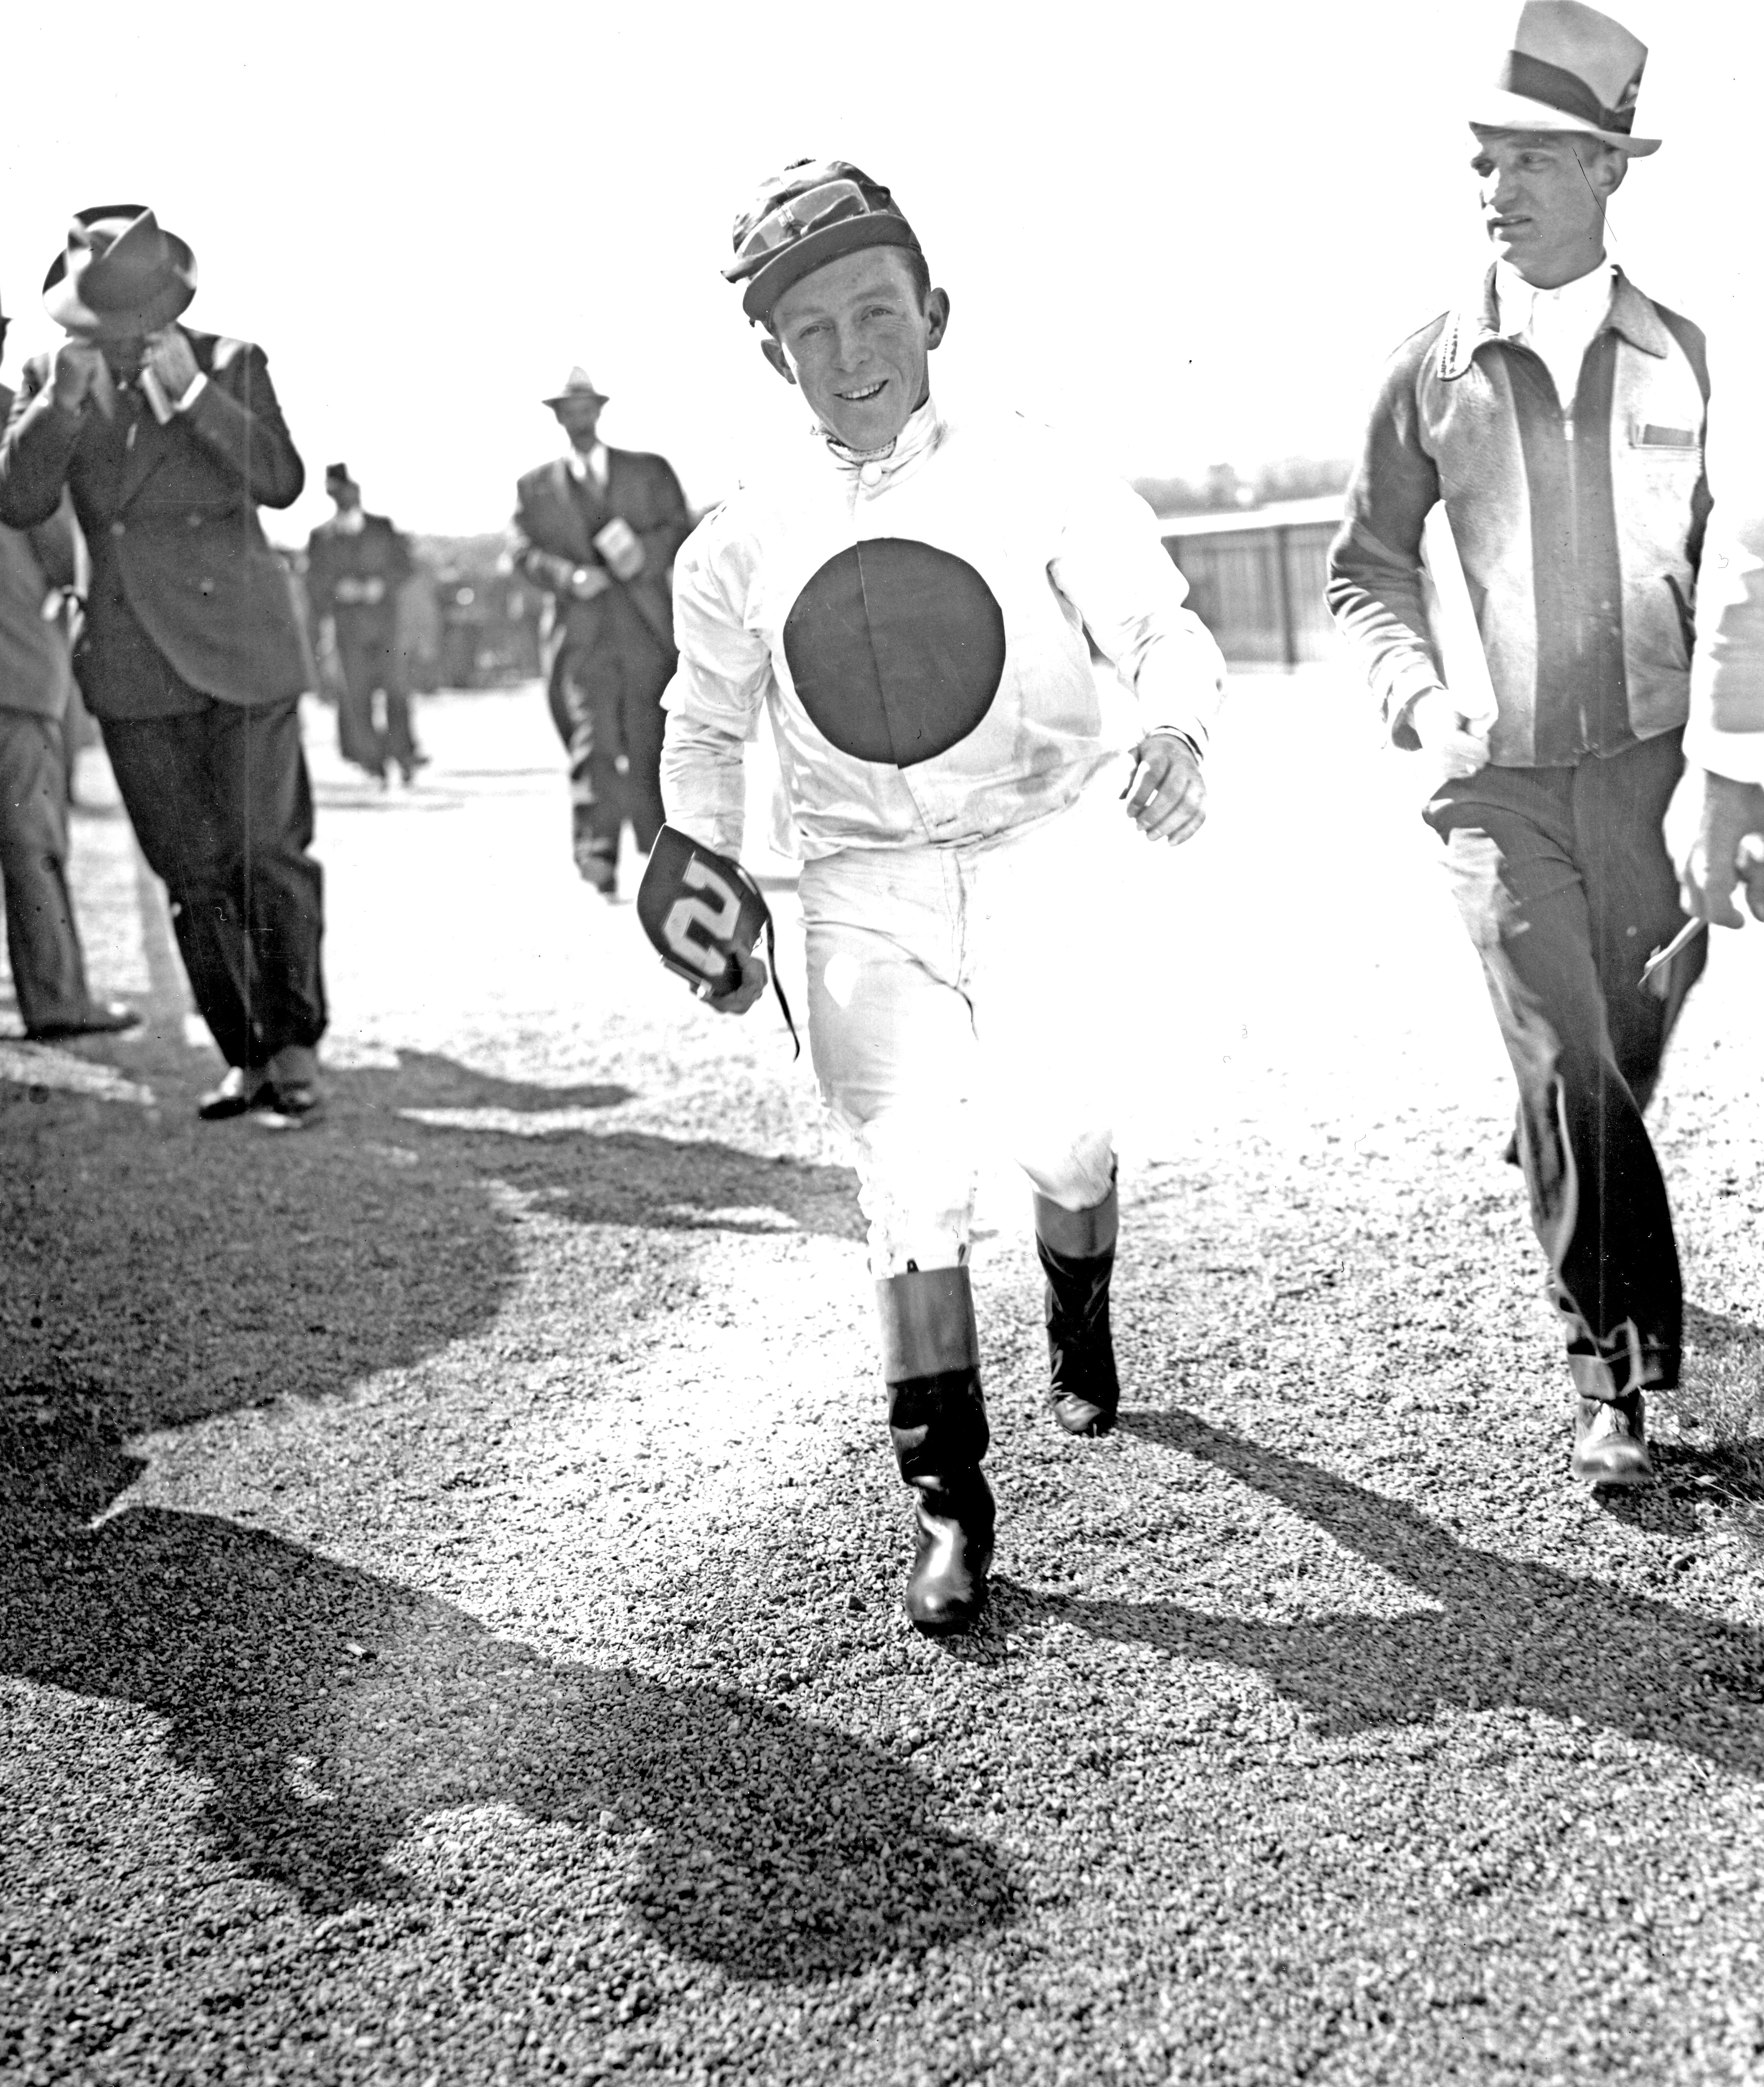 John Adams at Belmont Park, May 1939 (Keeneland Library Morgan Collection/Museum Collection)